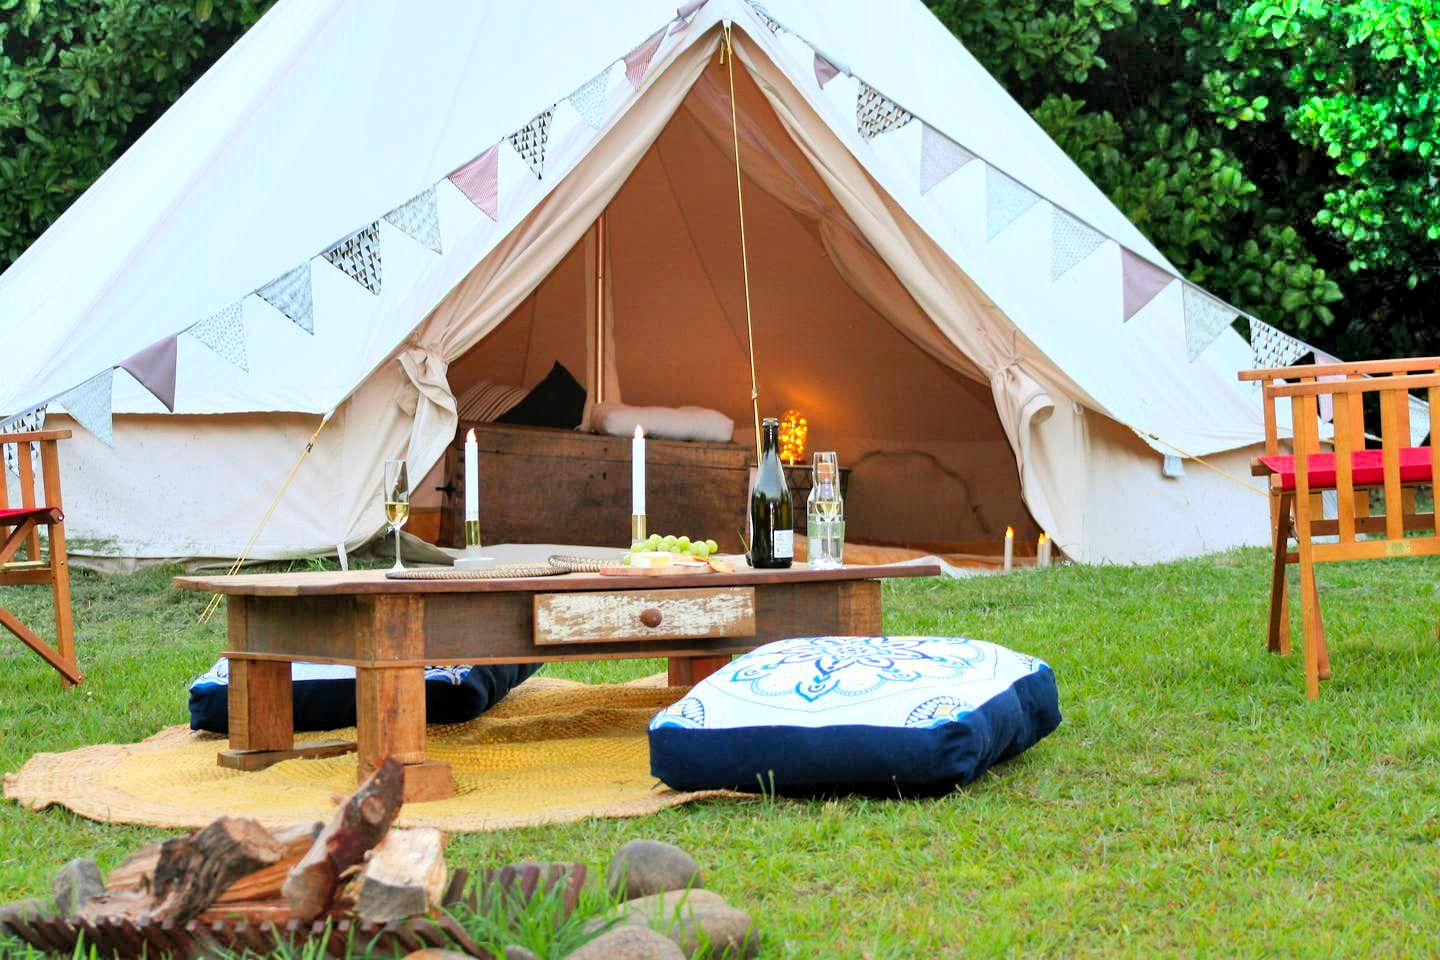 This tent rental is ideal for weekend getaways from Sydney! Guests will have plenty of outdoor space to relax in and a peaceful ambiance!